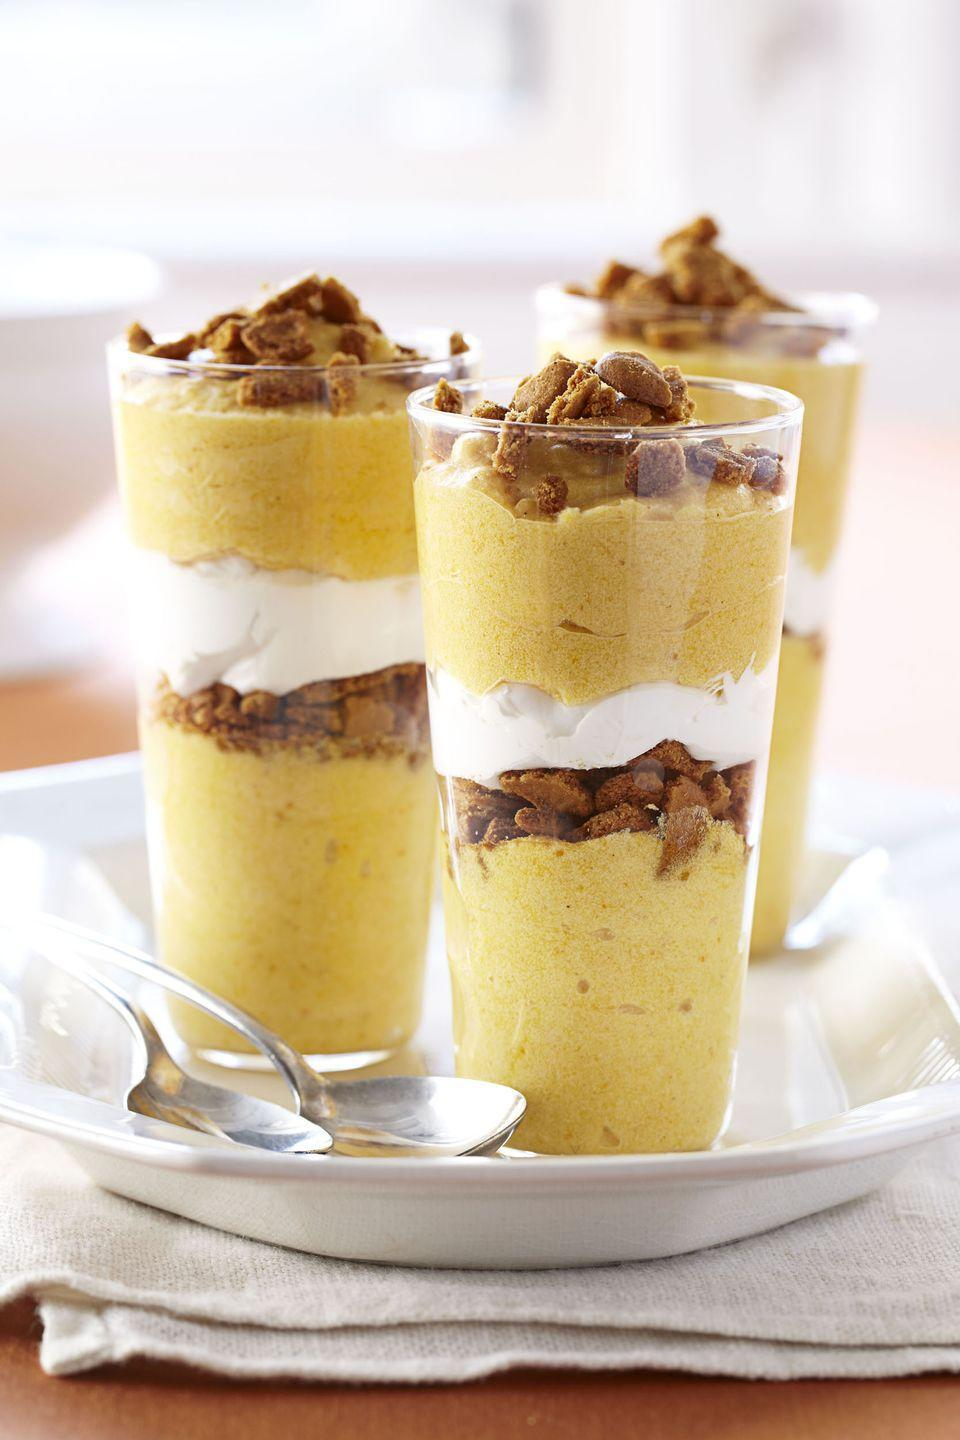 "<p>If assembling <a href=""https://www.goodhousekeeping.com/food-recipes/g3986/pumpkin-pie-recipes/"" rel=""nofollow noopener"" target=""_blank"" data-ylk=""slk:a pie"" class=""link rapid-noclick-resp"">a pie</a> is too much work (we feel ya!), keep it simple with these 30-minute parfaits. </p><p><em><a href=""https://www.goodhousekeeping.com/food-recipes/a11085/pumpkin-mousse-parfaits-recipe-ghk1111/"" rel=""nofollow noopener"" target=""_blank"" data-ylk=""slk:Get the recipe for Pumpkin Mousse Parfaits »"" class=""link rapid-noclick-resp"">Get the recipe for Pumpkin Mousse Parfaits »</a></em></p>"